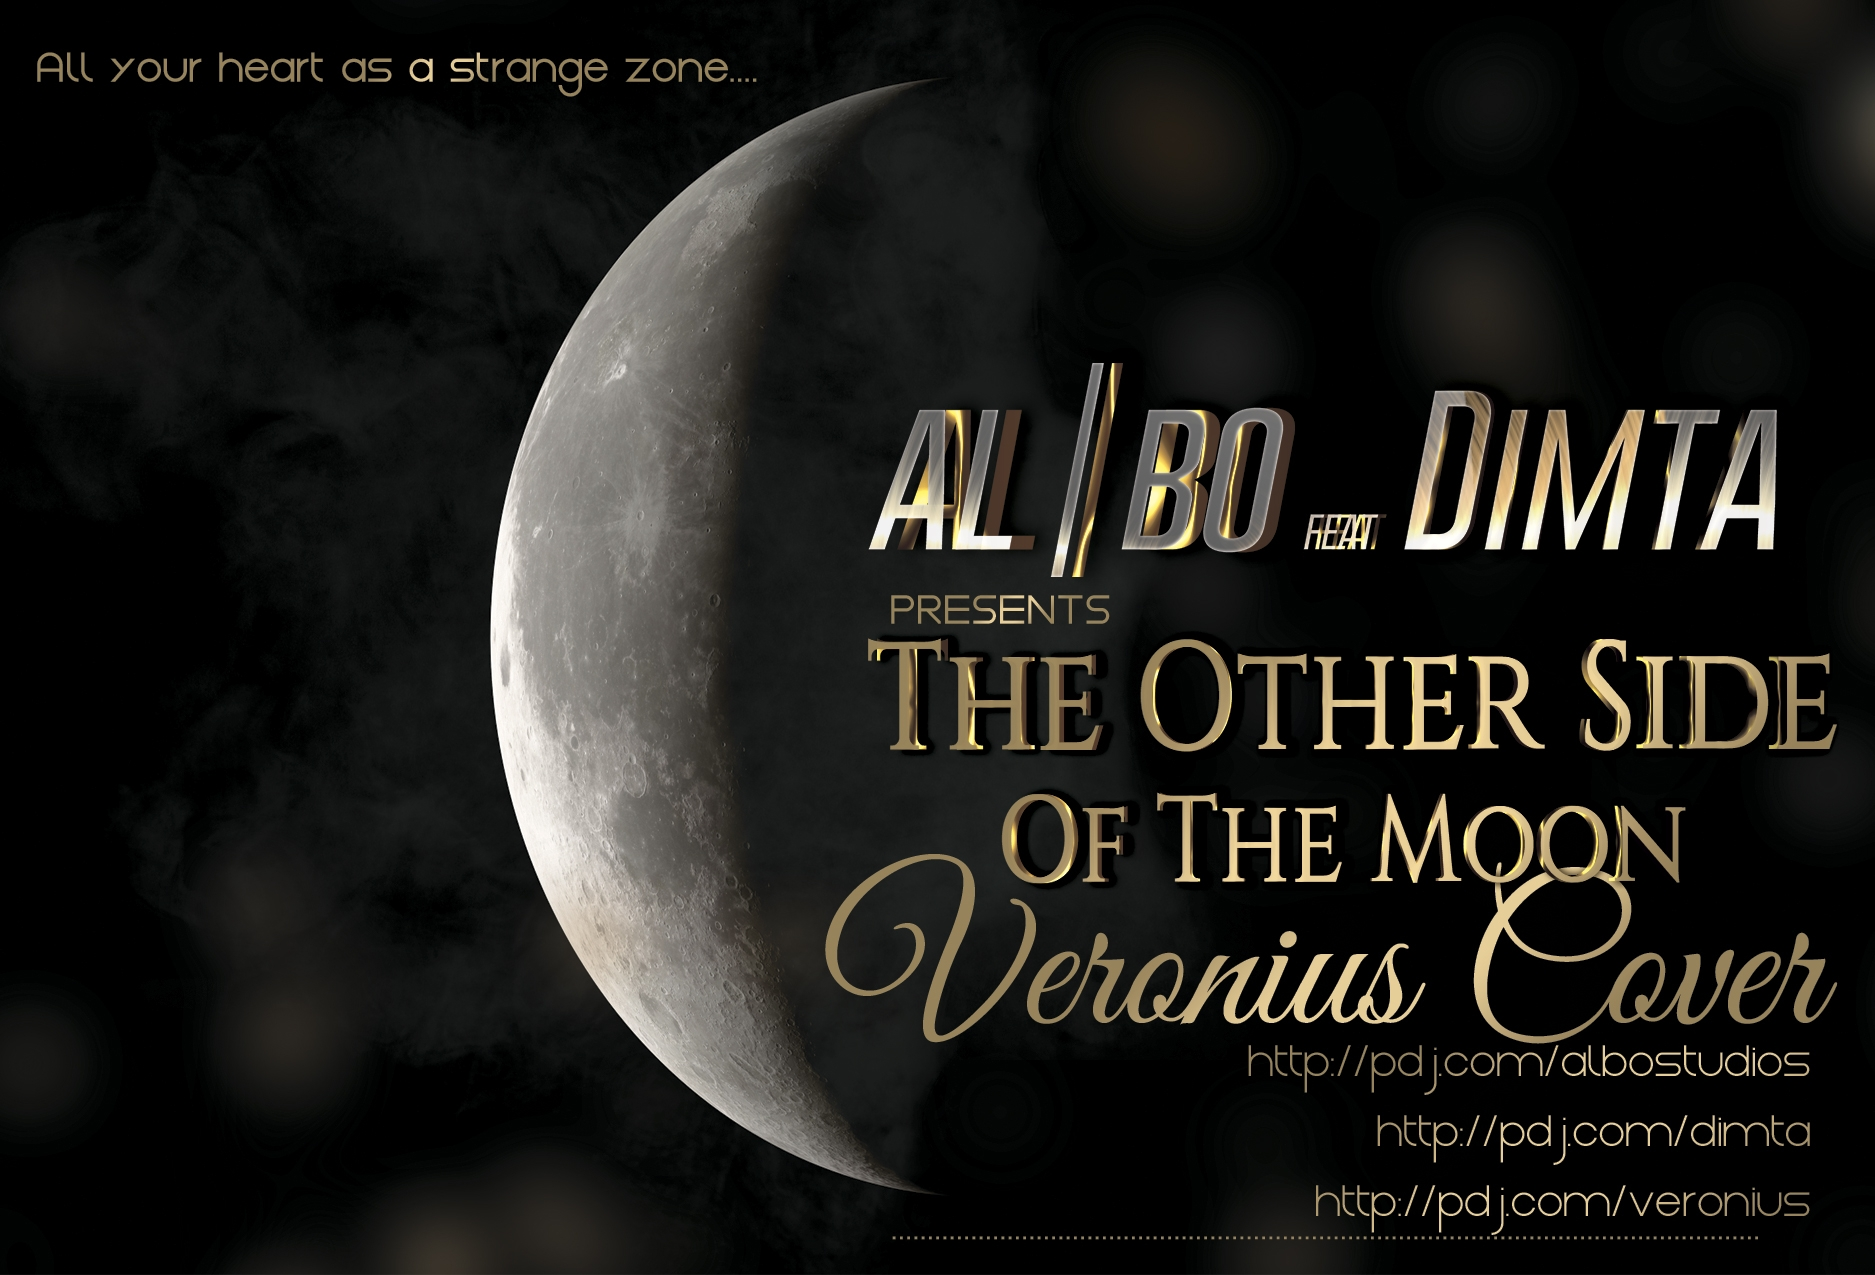 al l bo feat Dimta  - The Other Side Of The Moon (Veronius Cover)